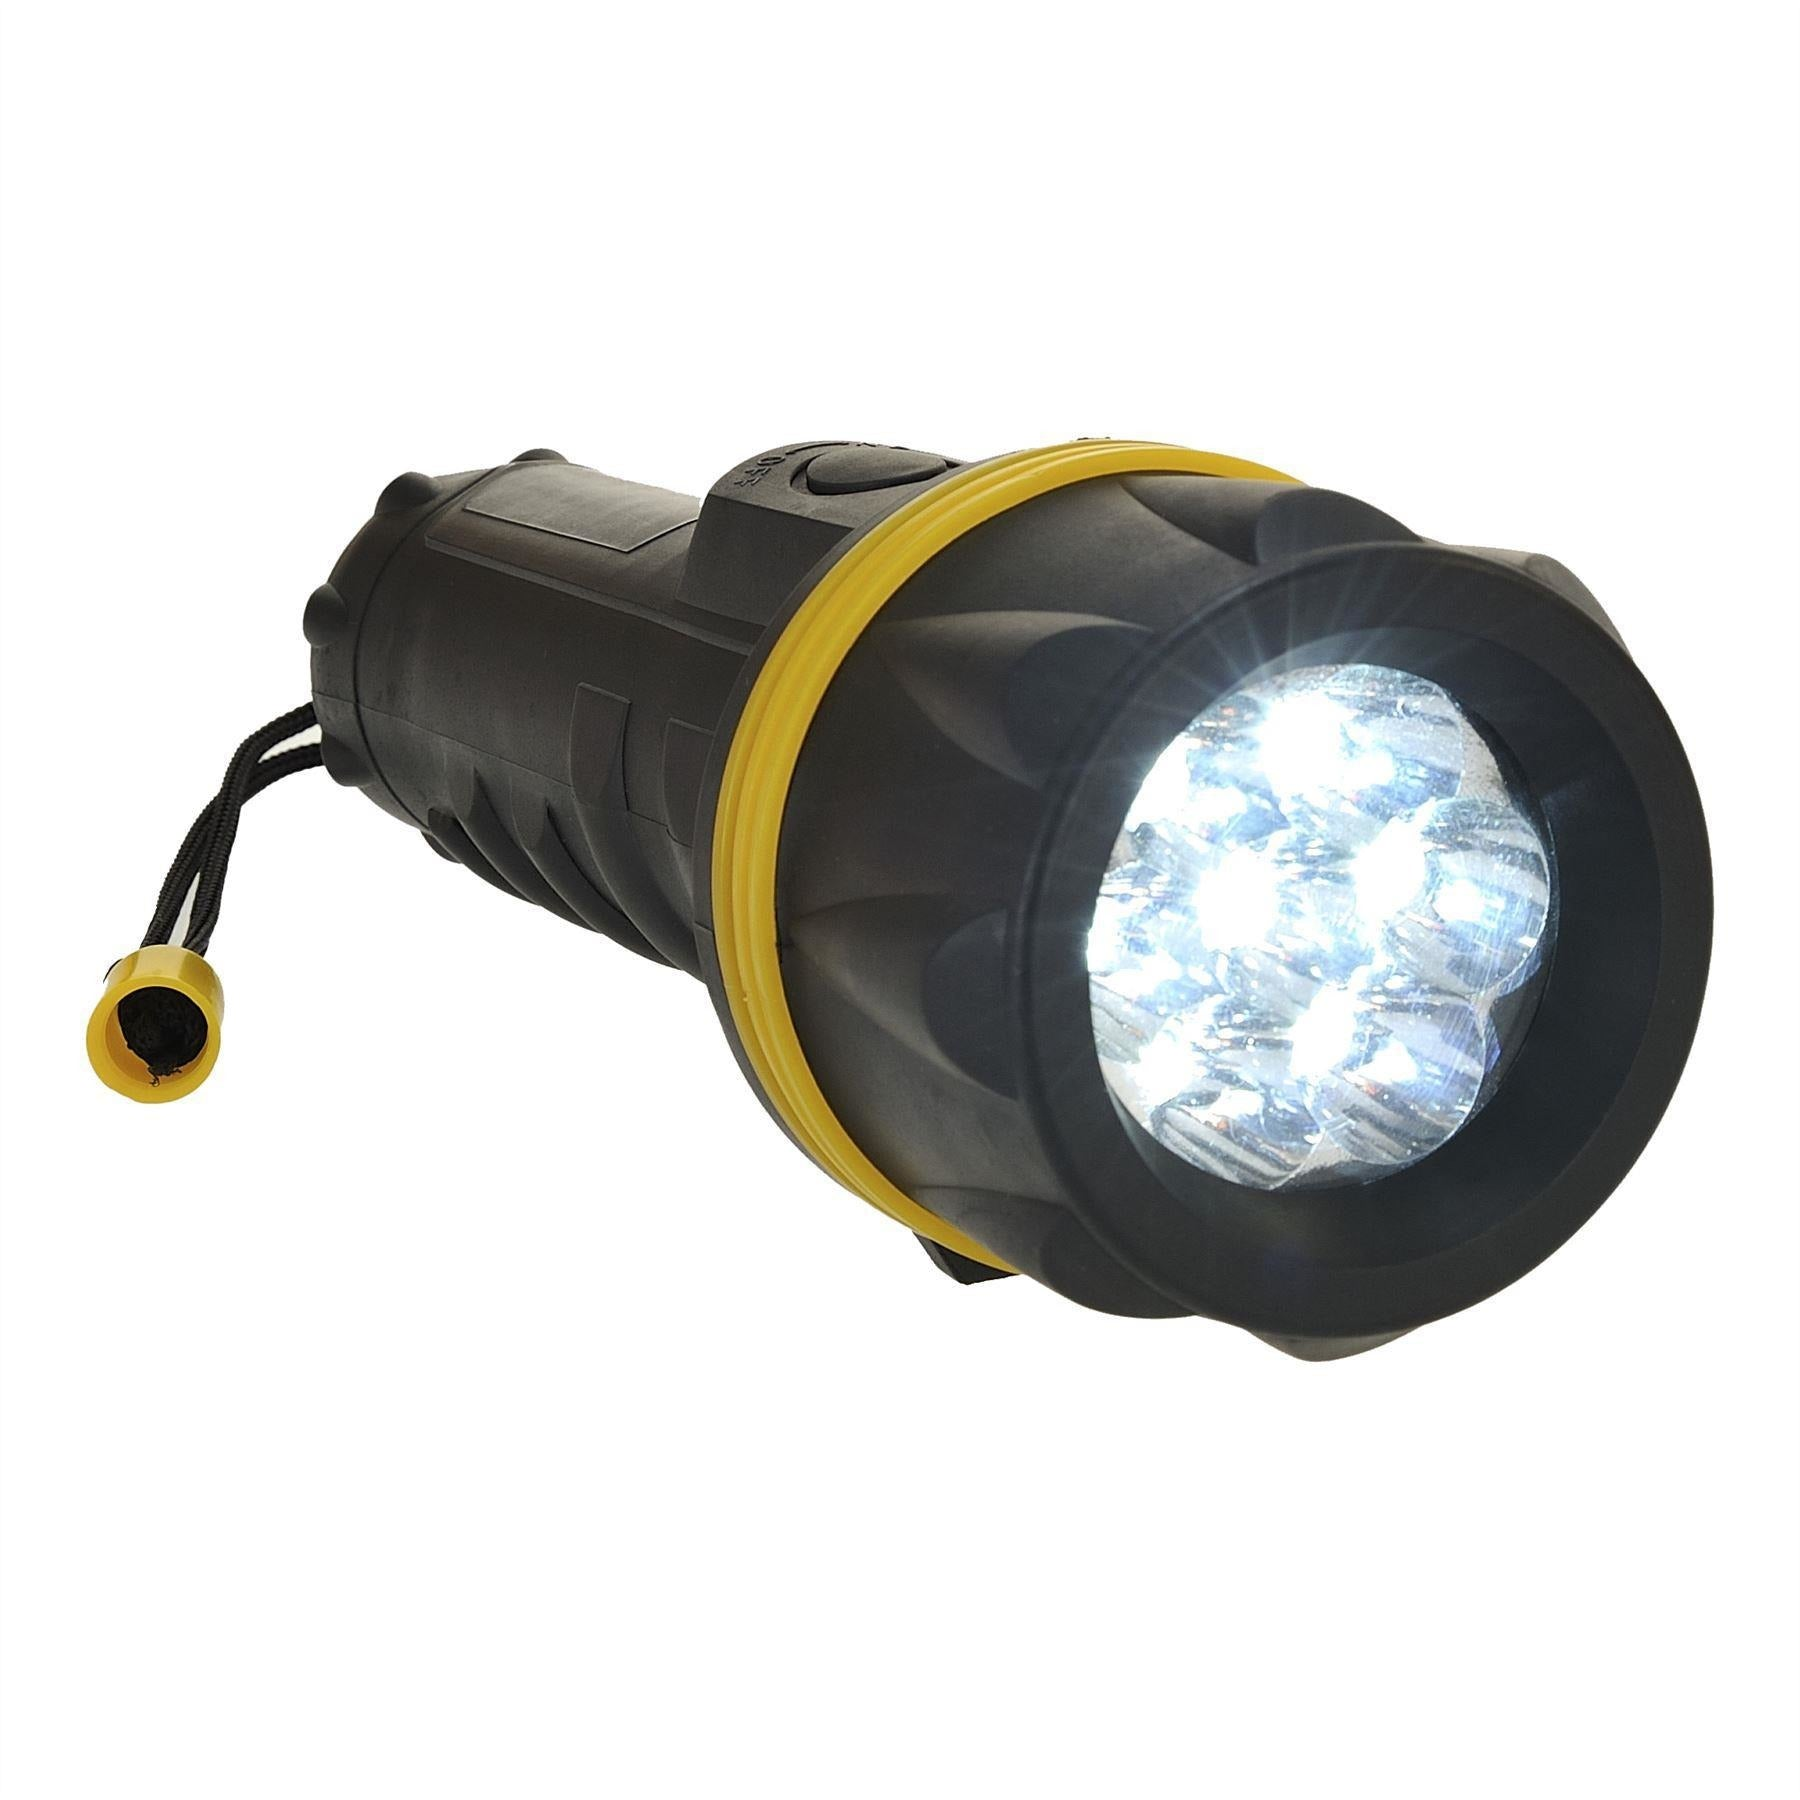 Portwest 7 L.E.D Rubber Torch